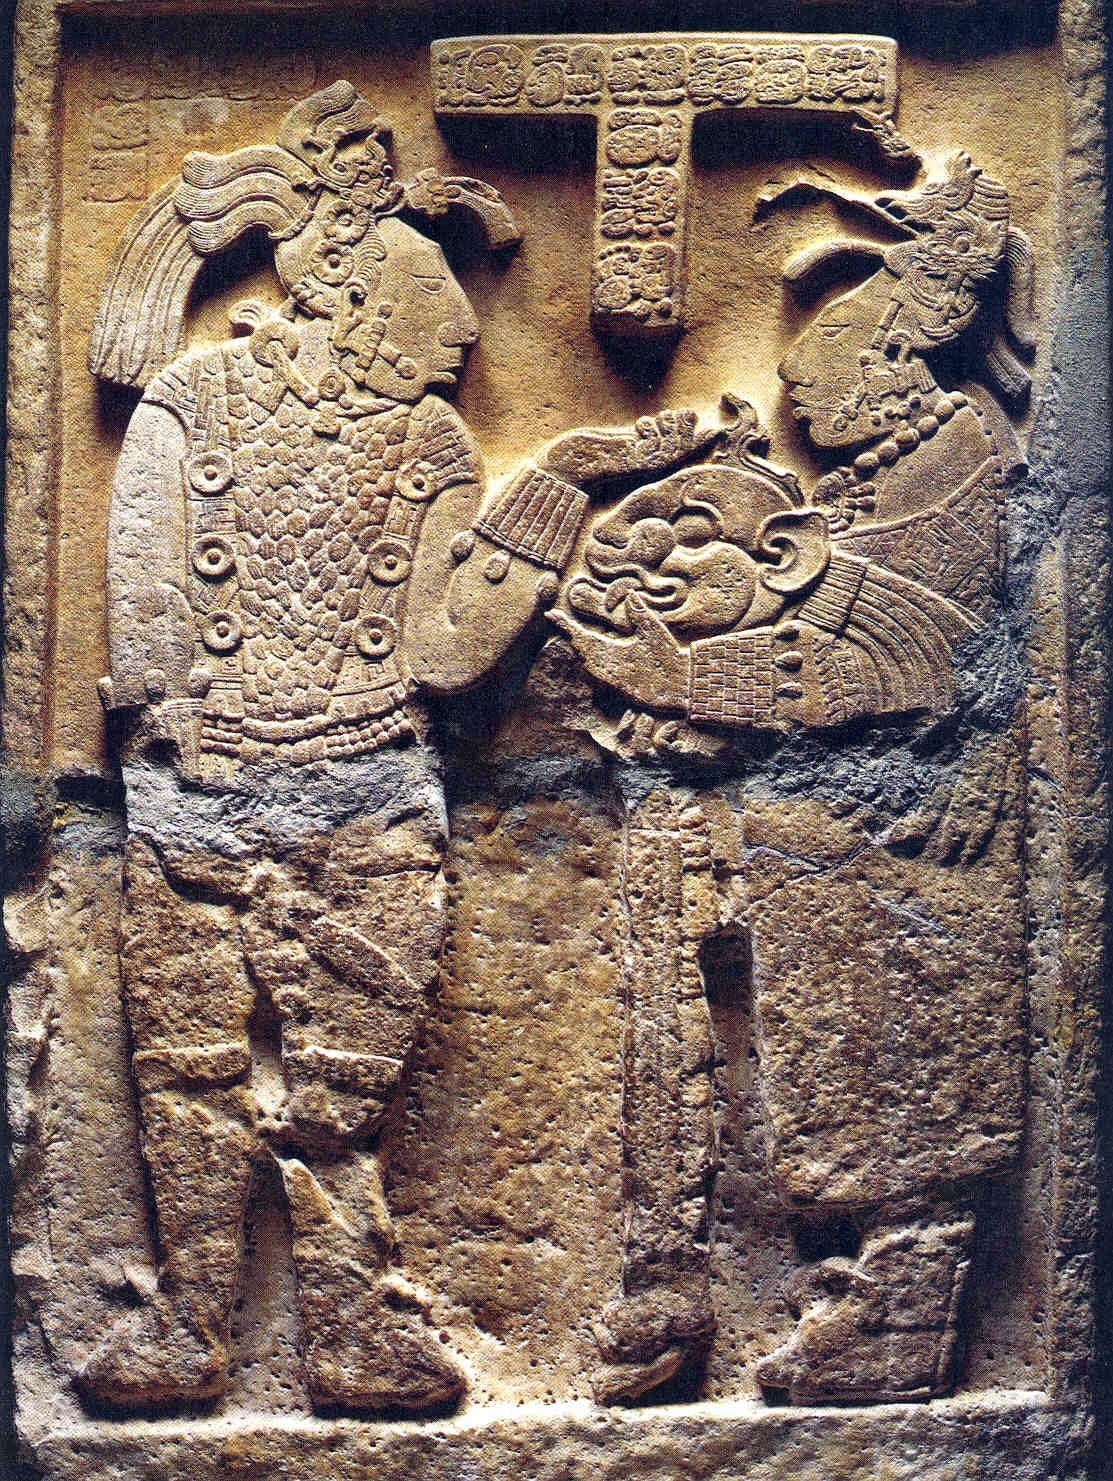 The Ancient Maya World Writes A Major Scholar Of Region Was Art In Magnificent Architecture Carvings Pottery Ceramic Figures